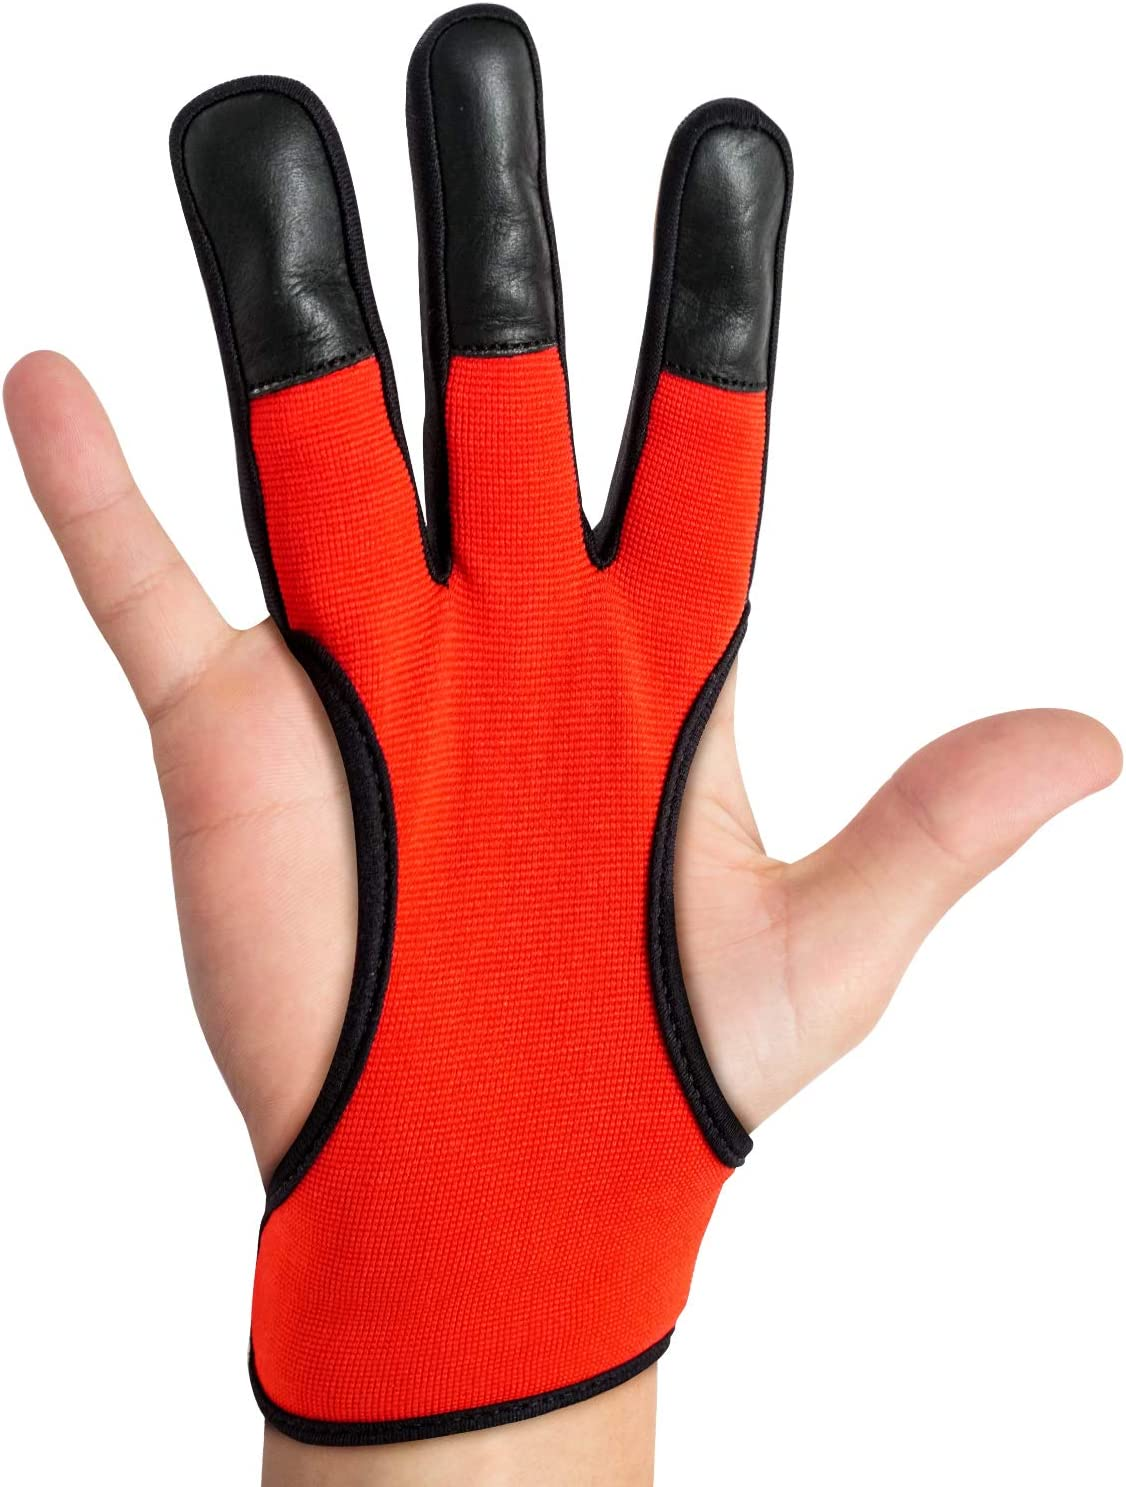 DMoose Archery Glove for Men Women, Three Finger Design, Finger Protection Shooting Hunting Targeting Bow Tab Gear Accessories, 4-Way and Leather Material Non-Slip Padded Guard Improve Grip Stability : Sports & Outdoors